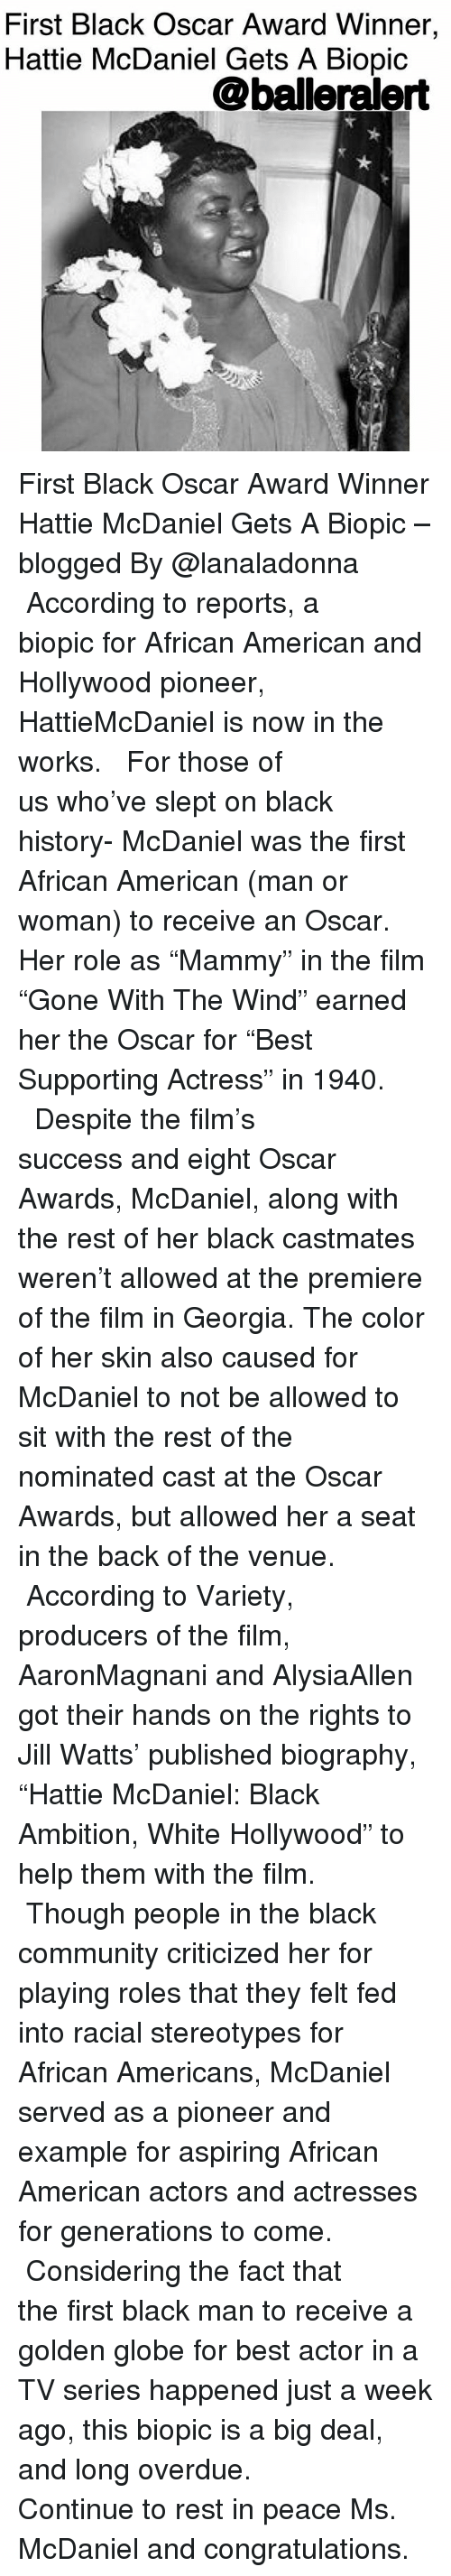 """Best Actor: First Black Oscar Award Winner,  Hattie McDaniel Gets A Biopic  @balleralert First Black Oscar Award Winner Hattie McDaniel Gets A Biopic – blogged By @lanaladonna ⠀⠀⠀⠀⠀⠀⠀ ⠀⠀⠀⠀⠀⠀⠀ According to reports, a biopic for African American and Hollywood pioneer, HattieMcDaniel is now in the works. ⠀⠀⠀⠀⠀⠀⠀ ⠀⠀⠀⠀⠀⠀⠀ For those of us who've slept on black history- McDaniel was the first African American (man or woman) to receive an Oscar. Her role as """"Mammy"""" in the film """"Gone With The Wind"""" earned her the Oscar for """"Best Supporting Actress"""" in 1940. ⠀⠀⠀⠀⠀⠀⠀ ⠀⠀⠀⠀⠀⠀⠀ Despite the film's success and eight Oscar Awards, McDaniel, along with the rest of her black castmates weren't allowed at the premiere of the film in Georgia. The color of her skin also caused for McDaniel to not be allowed to sit with the rest of the nominated cast at the Oscar Awards, but allowed her a seat in the back of the venue. ⠀⠀⠀⠀⠀⠀⠀ ⠀⠀⠀⠀⠀⠀⠀ According to Variety, producers of the film, AaronMagnani and AlysiaAllen got their hands on the rights to Jill Watts' published biography, """"Hattie McDaniel: Black Ambition, White Hollywood"""" to help them with the film. ⠀⠀⠀⠀⠀⠀⠀ ⠀⠀⠀⠀⠀⠀⠀ Though people in the black community criticized her for playing roles that they felt fed into racial stereotypes for African Americans, McDaniel served as a pioneer and example for aspiring African American actors and actresses for generations to come. ⠀⠀⠀⠀⠀⠀⠀ ⠀⠀⠀⠀⠀⠀⠀ Considering the fact that the first black man to receive a golden globe for best actor in a TV series happened just a week ago, this biopic is a big deal, and long overdue. ⠀⠀⠀⠀⠀⠀⠀ ⠀⠀⠀⠀⠀⠀⠀ Continue to rest in peace Ms. McDaniel and congratulations."""